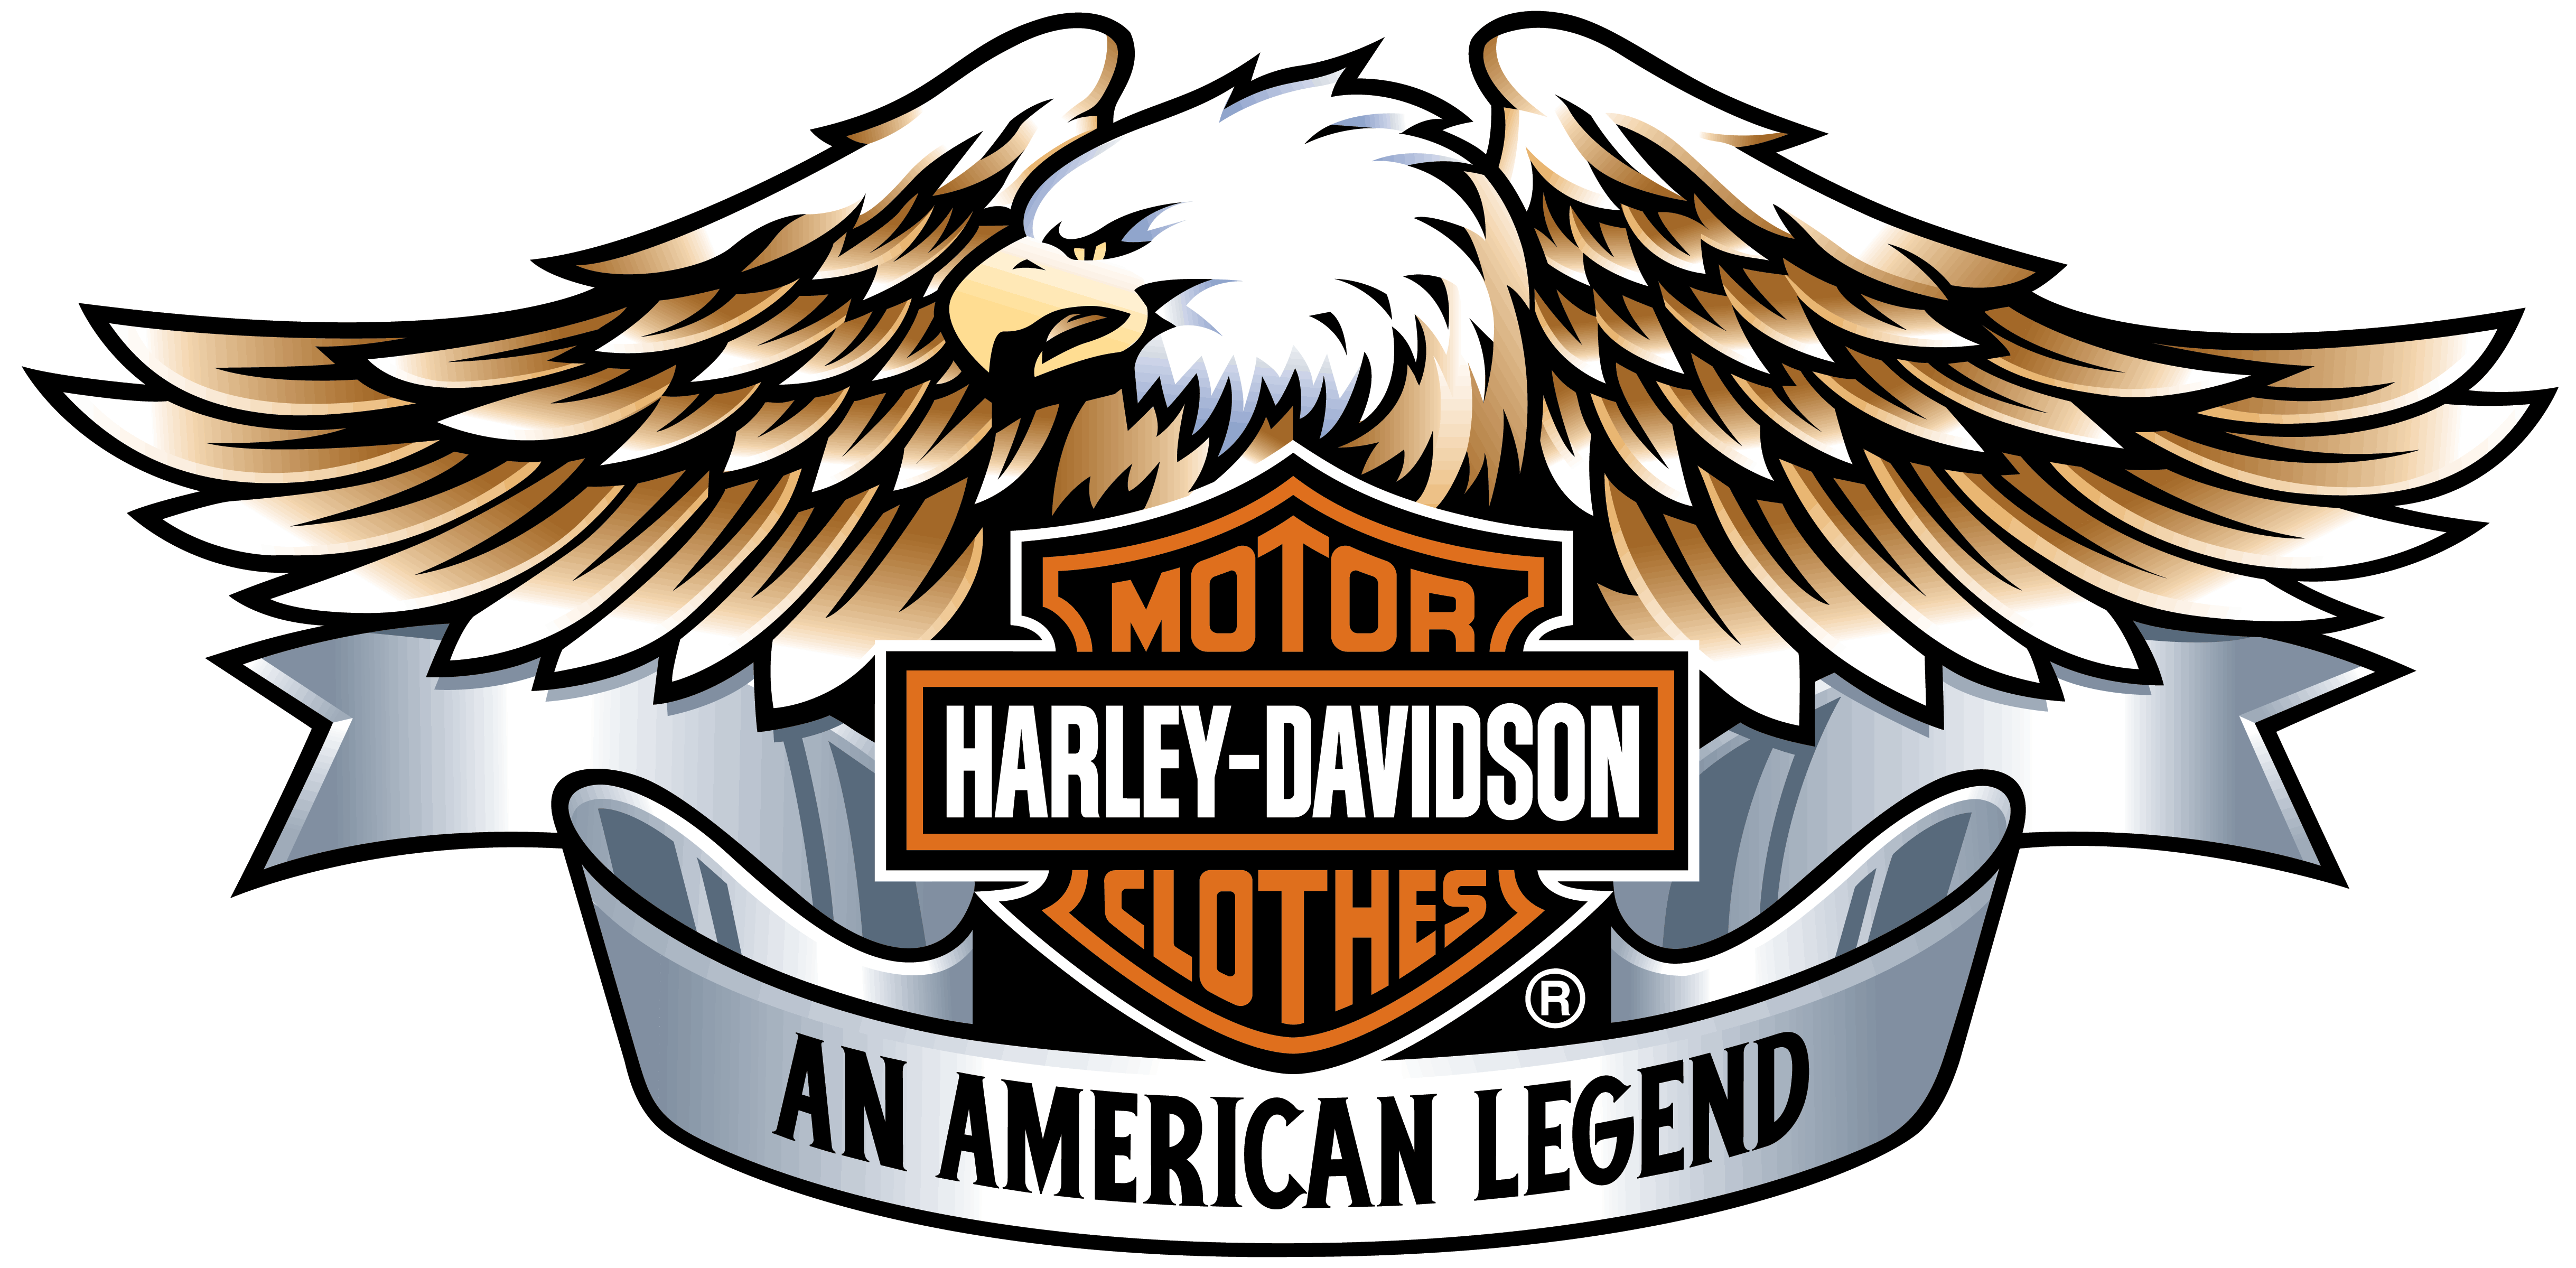 Download Harley Davidson Logo Latest Version 2018 image #16300